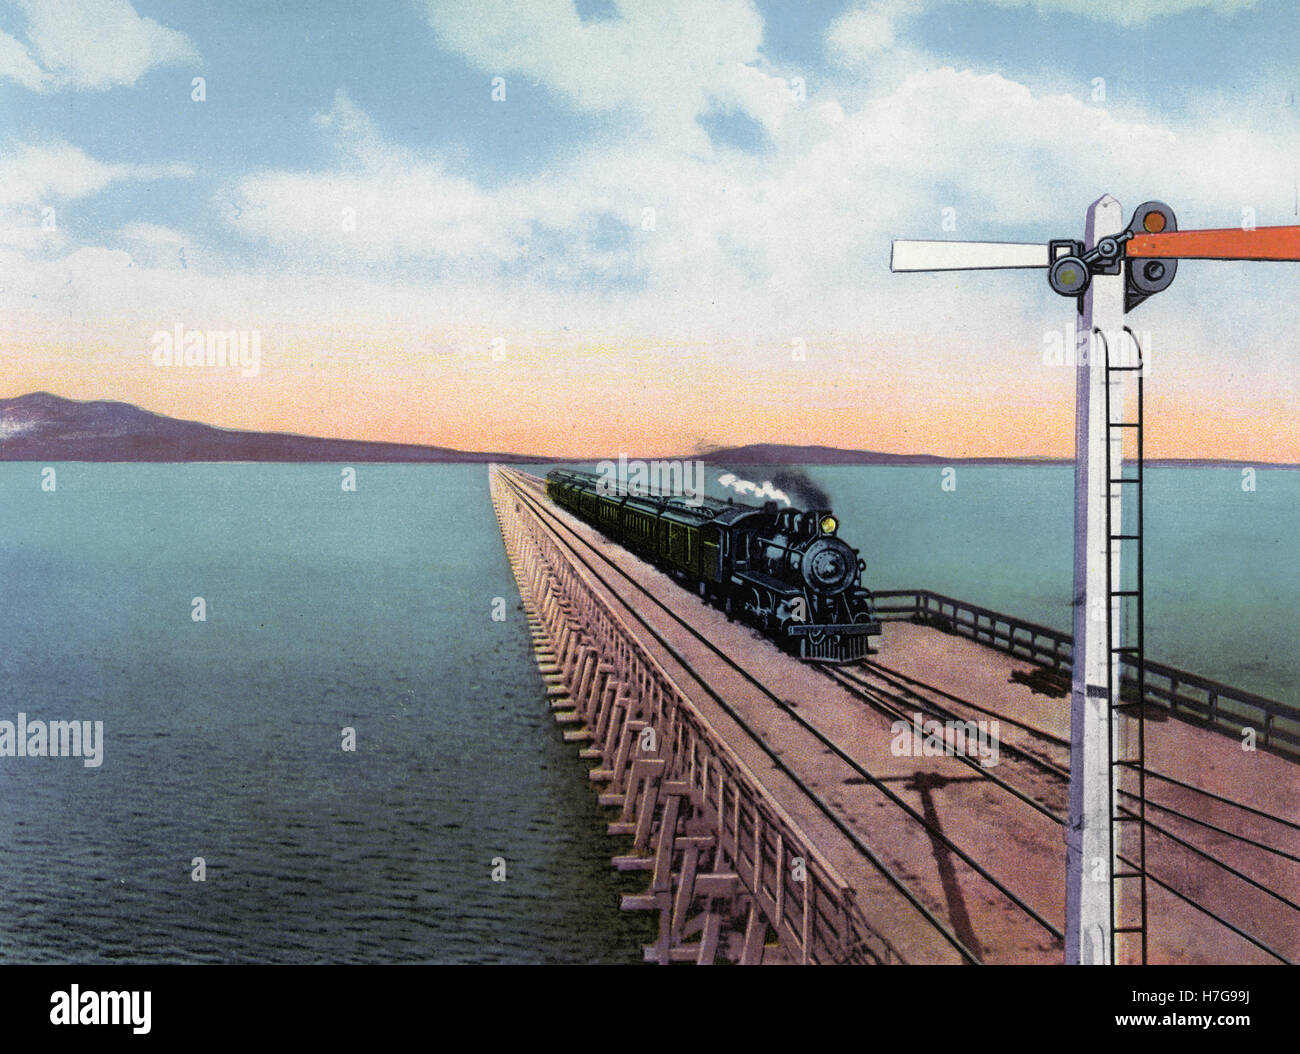 The Lucin cut-off, across Great Salt lake, USA illustration - Stock Image